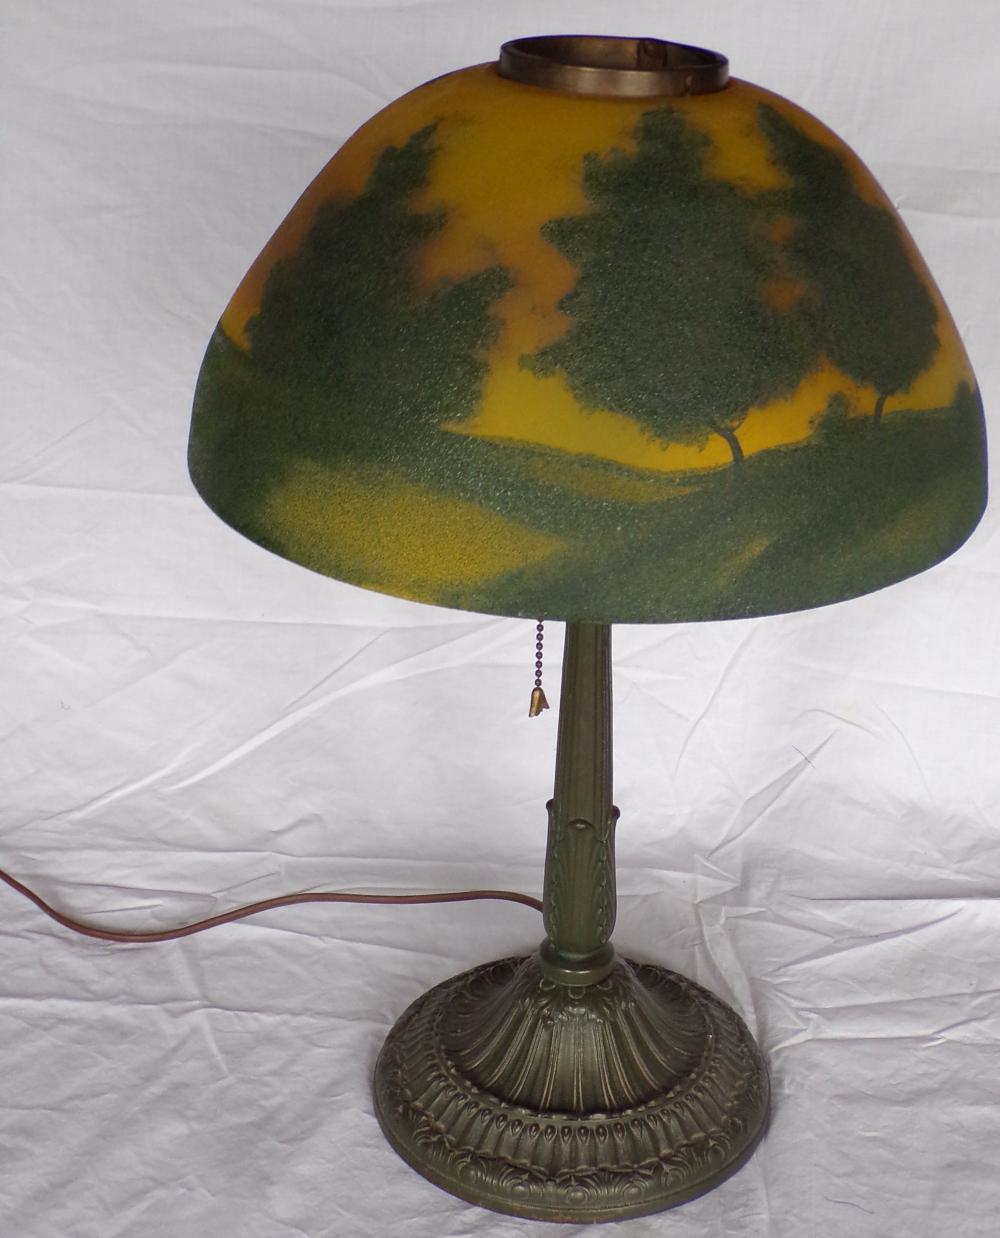 "20th century table lamp having a handpainted shade with landscape scene & trees, unsigned, mounted on a column having a leaf form design & iron weighted base, electrified, round piece which cord comes out of is not original to lamp, under side of shade has some interior chips, 18 ¼"" T x 7 1/4"" base diameter, shade 12"" diameter,"